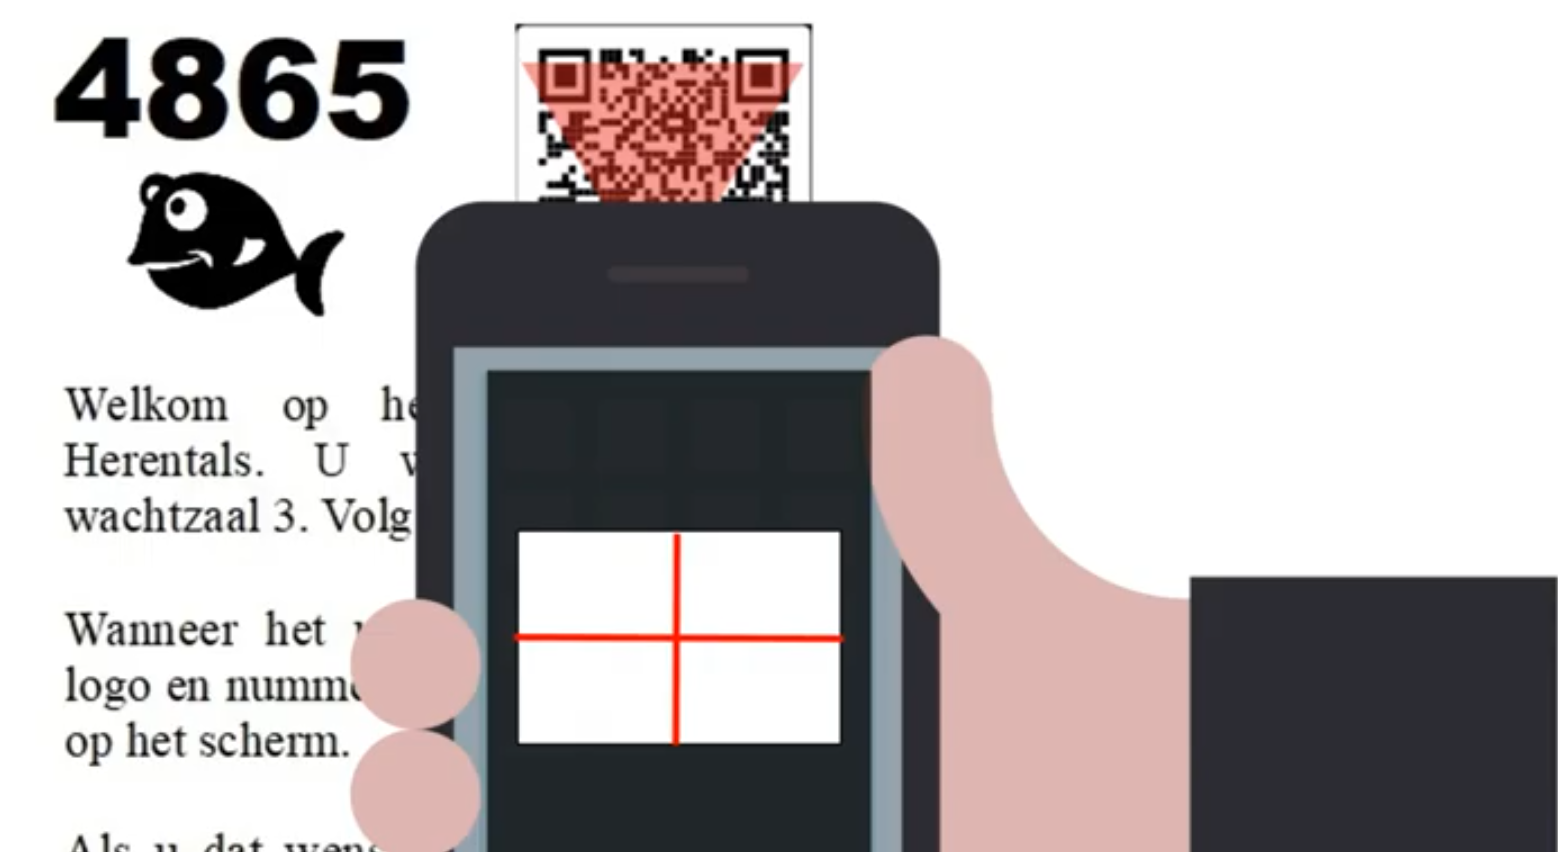 Scan QR code for mobile